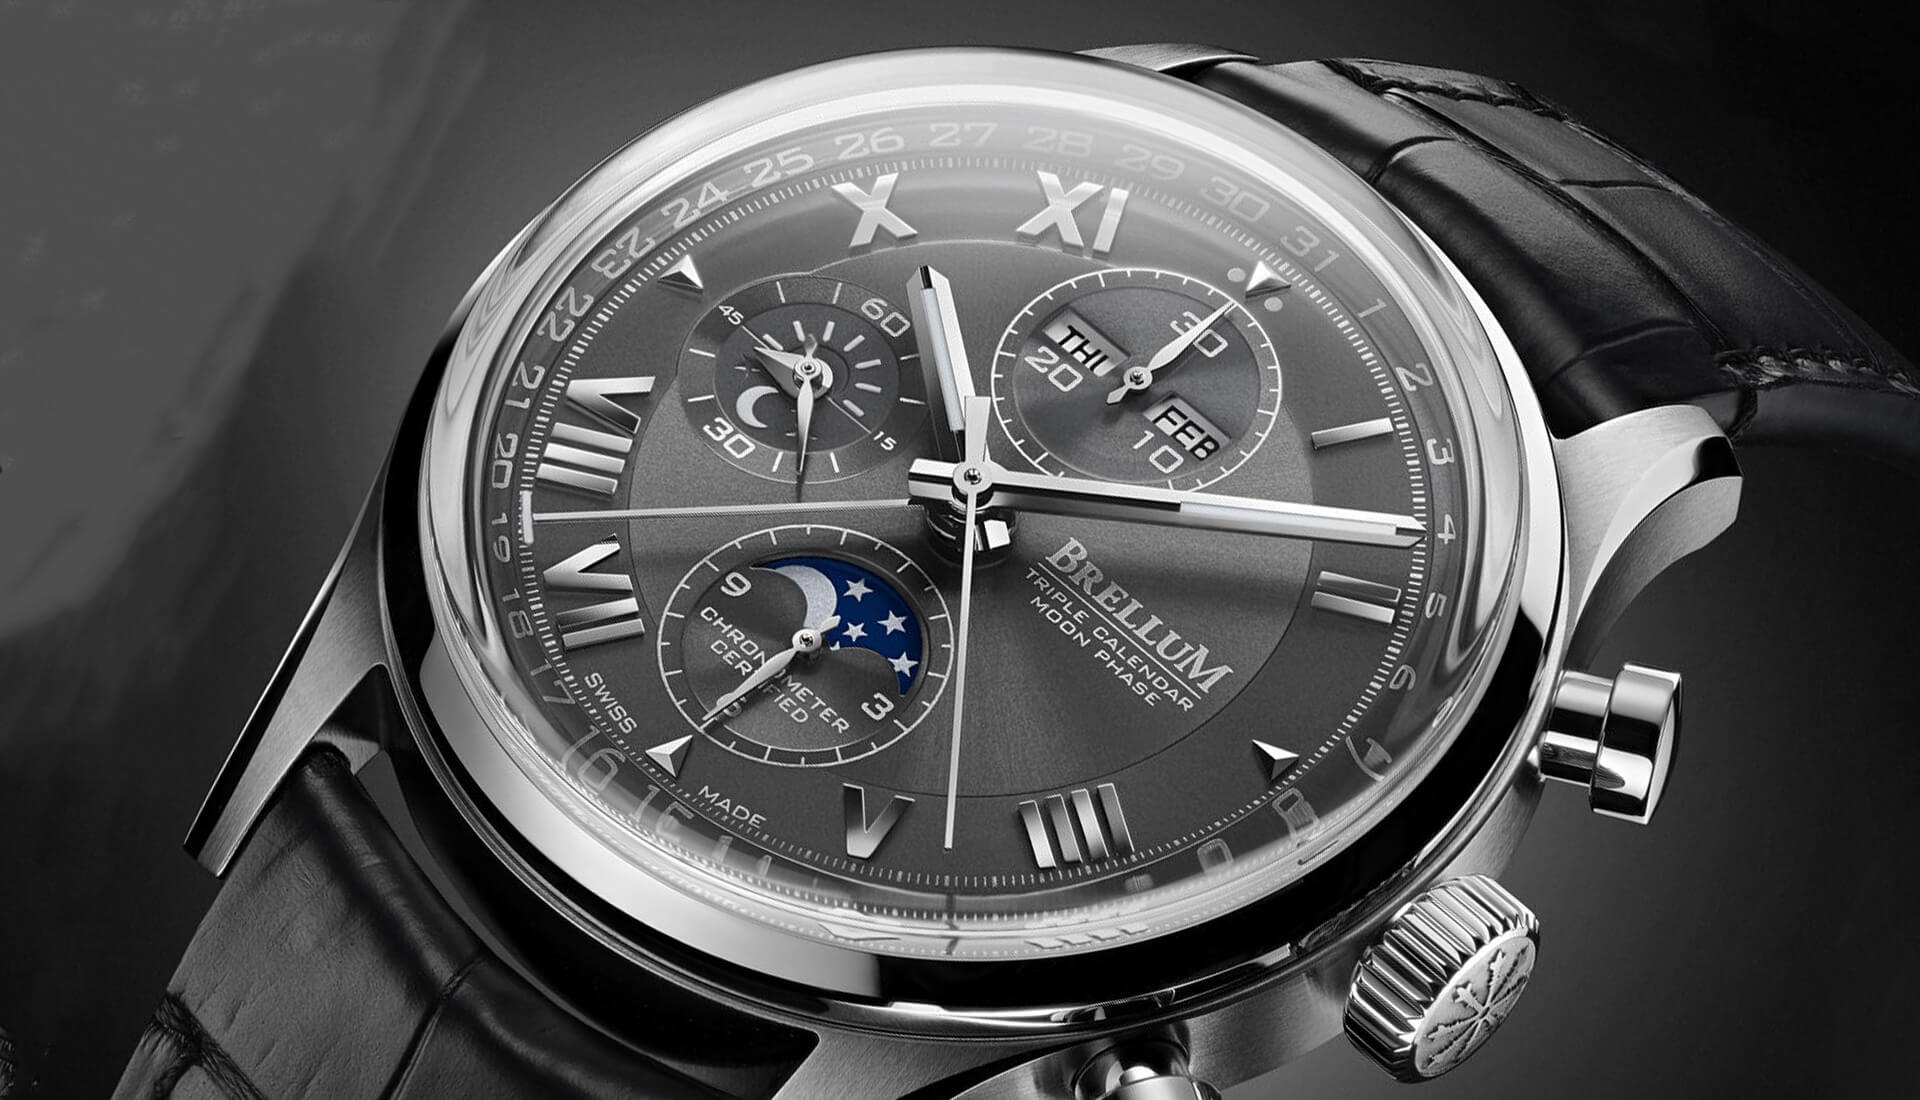 From The Press: The Value-Packed COSC-Certified Triple Calendar Moonphase Chronograph You've Never Heard Of